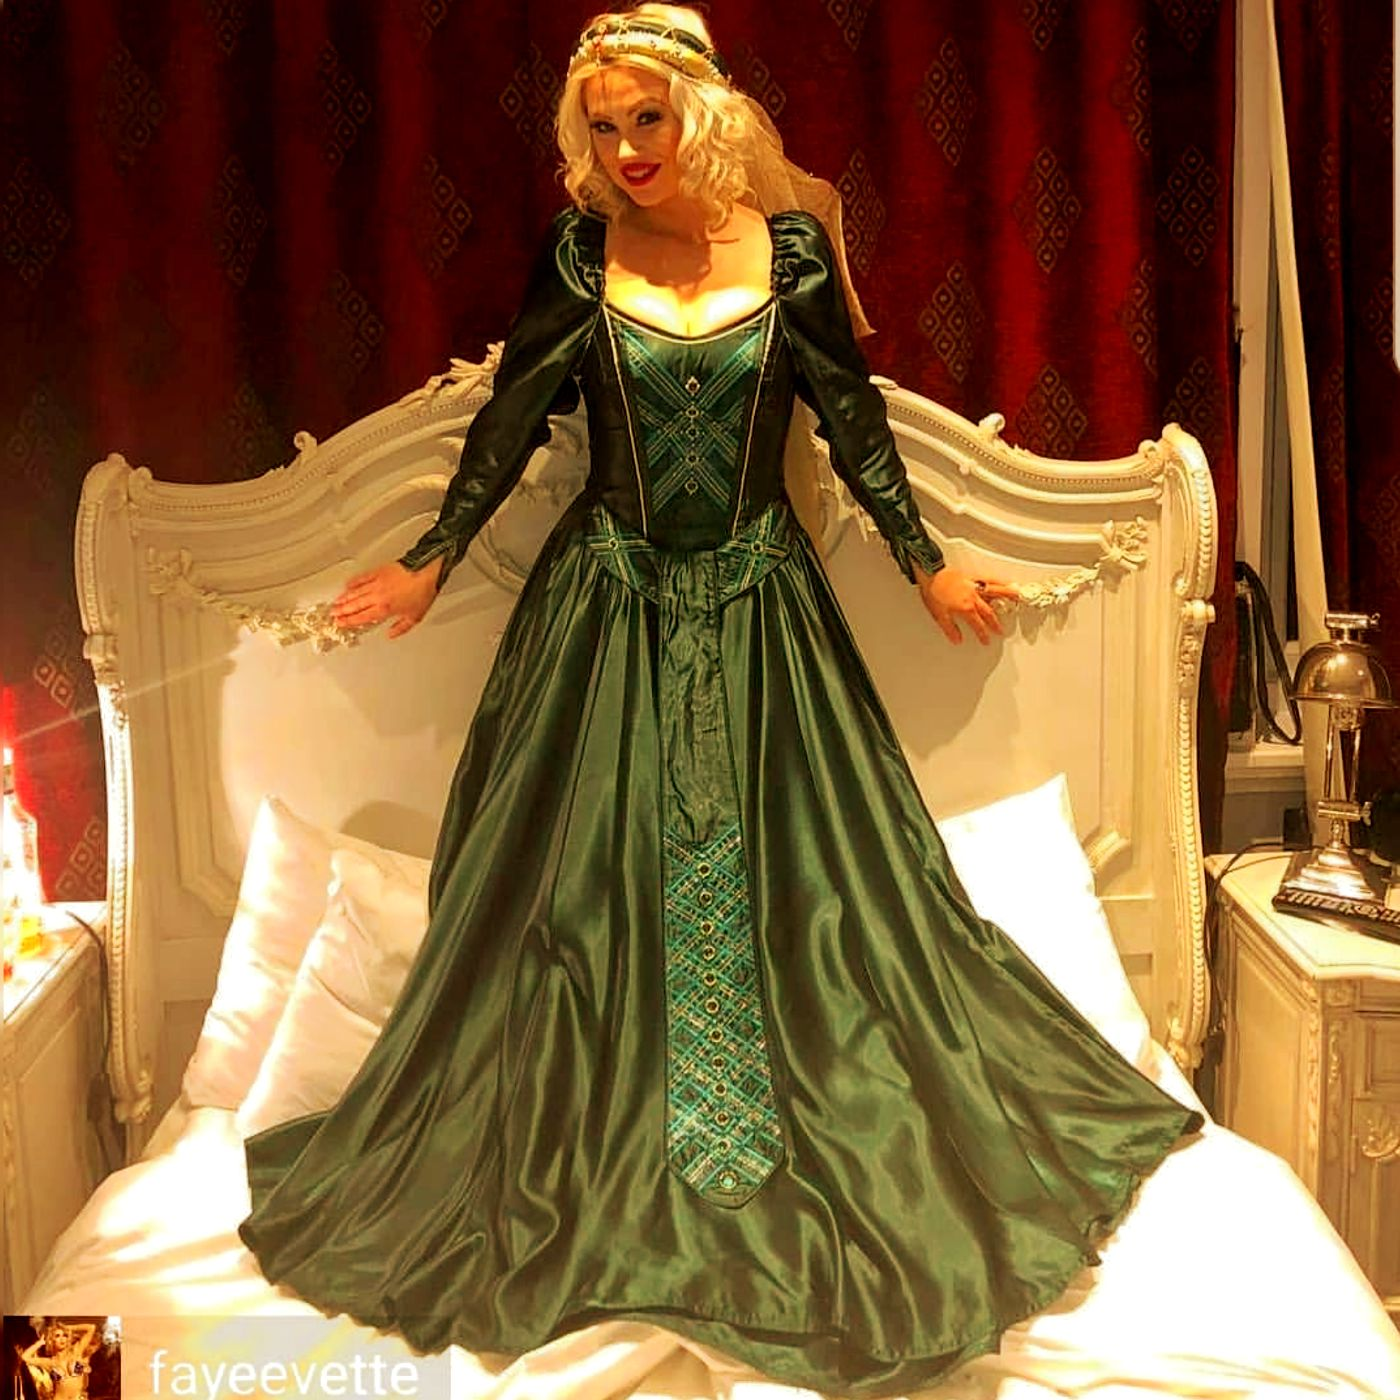 Castleton green. A ve neck medieval gown in green, petrol blue and gold.